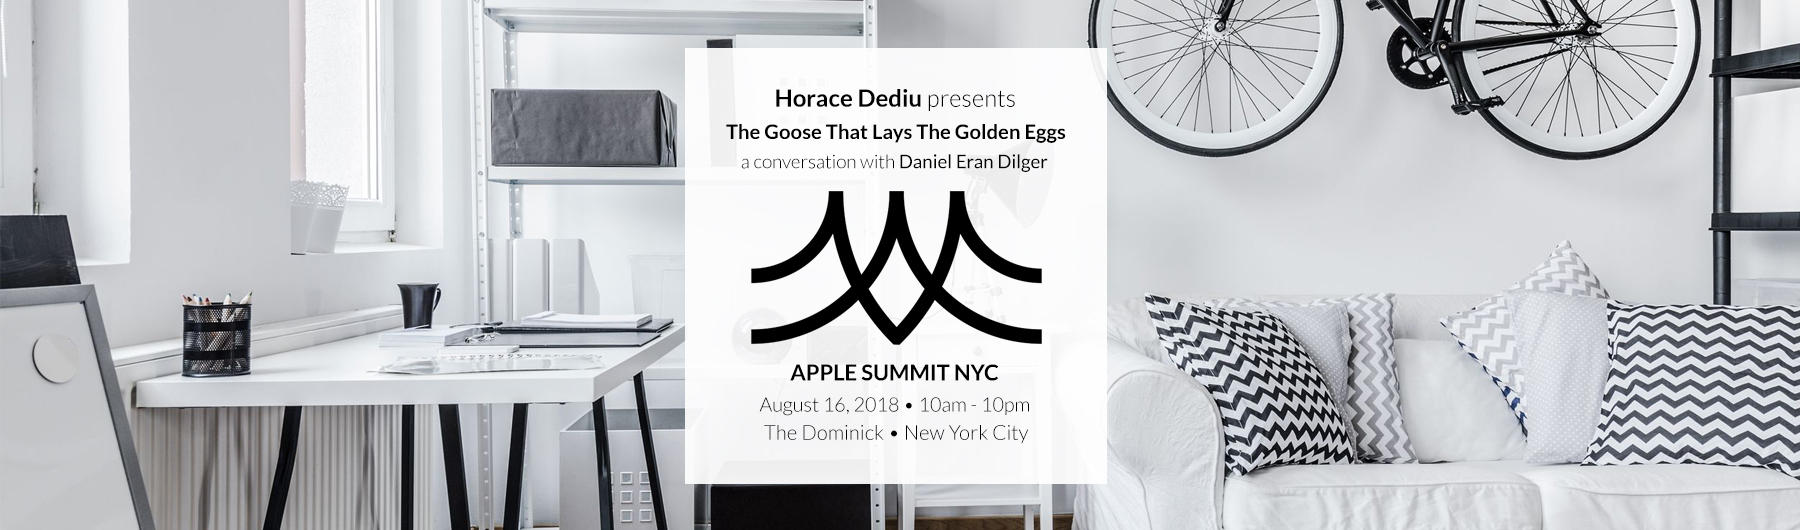  Apple Summit NYC